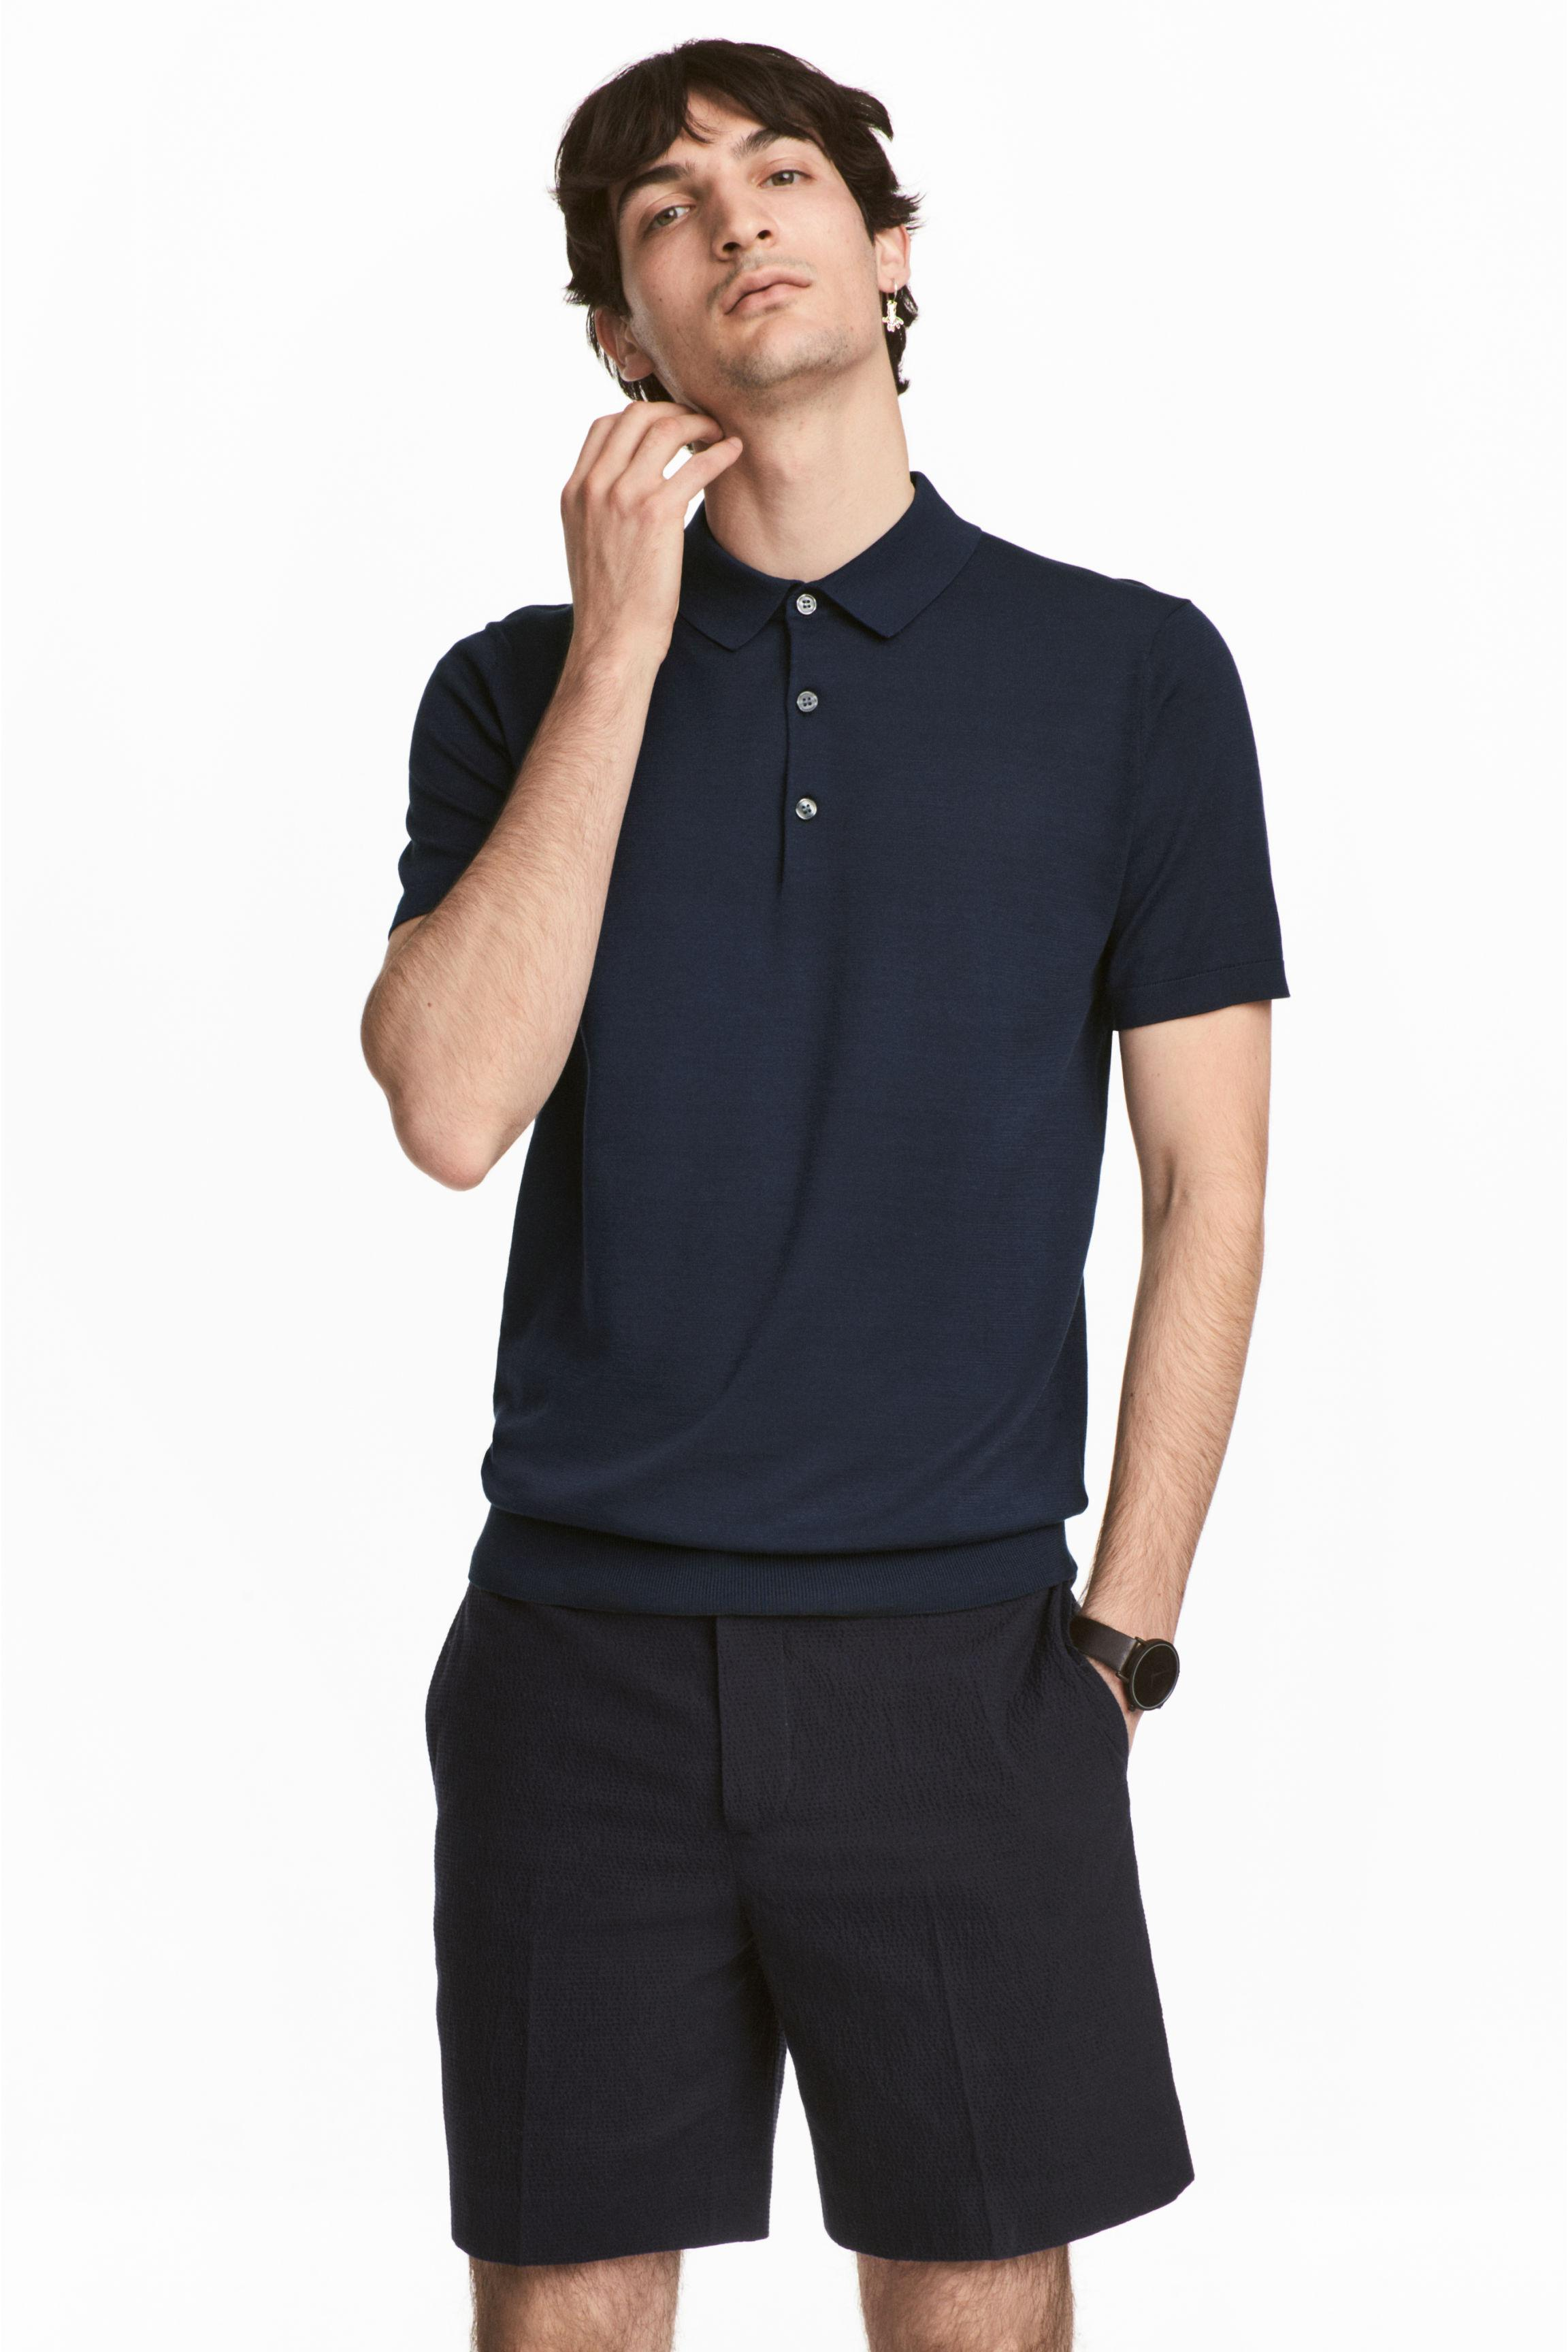 H m silk blend polo shirt in blue for men lyst for H m polo shirt mens